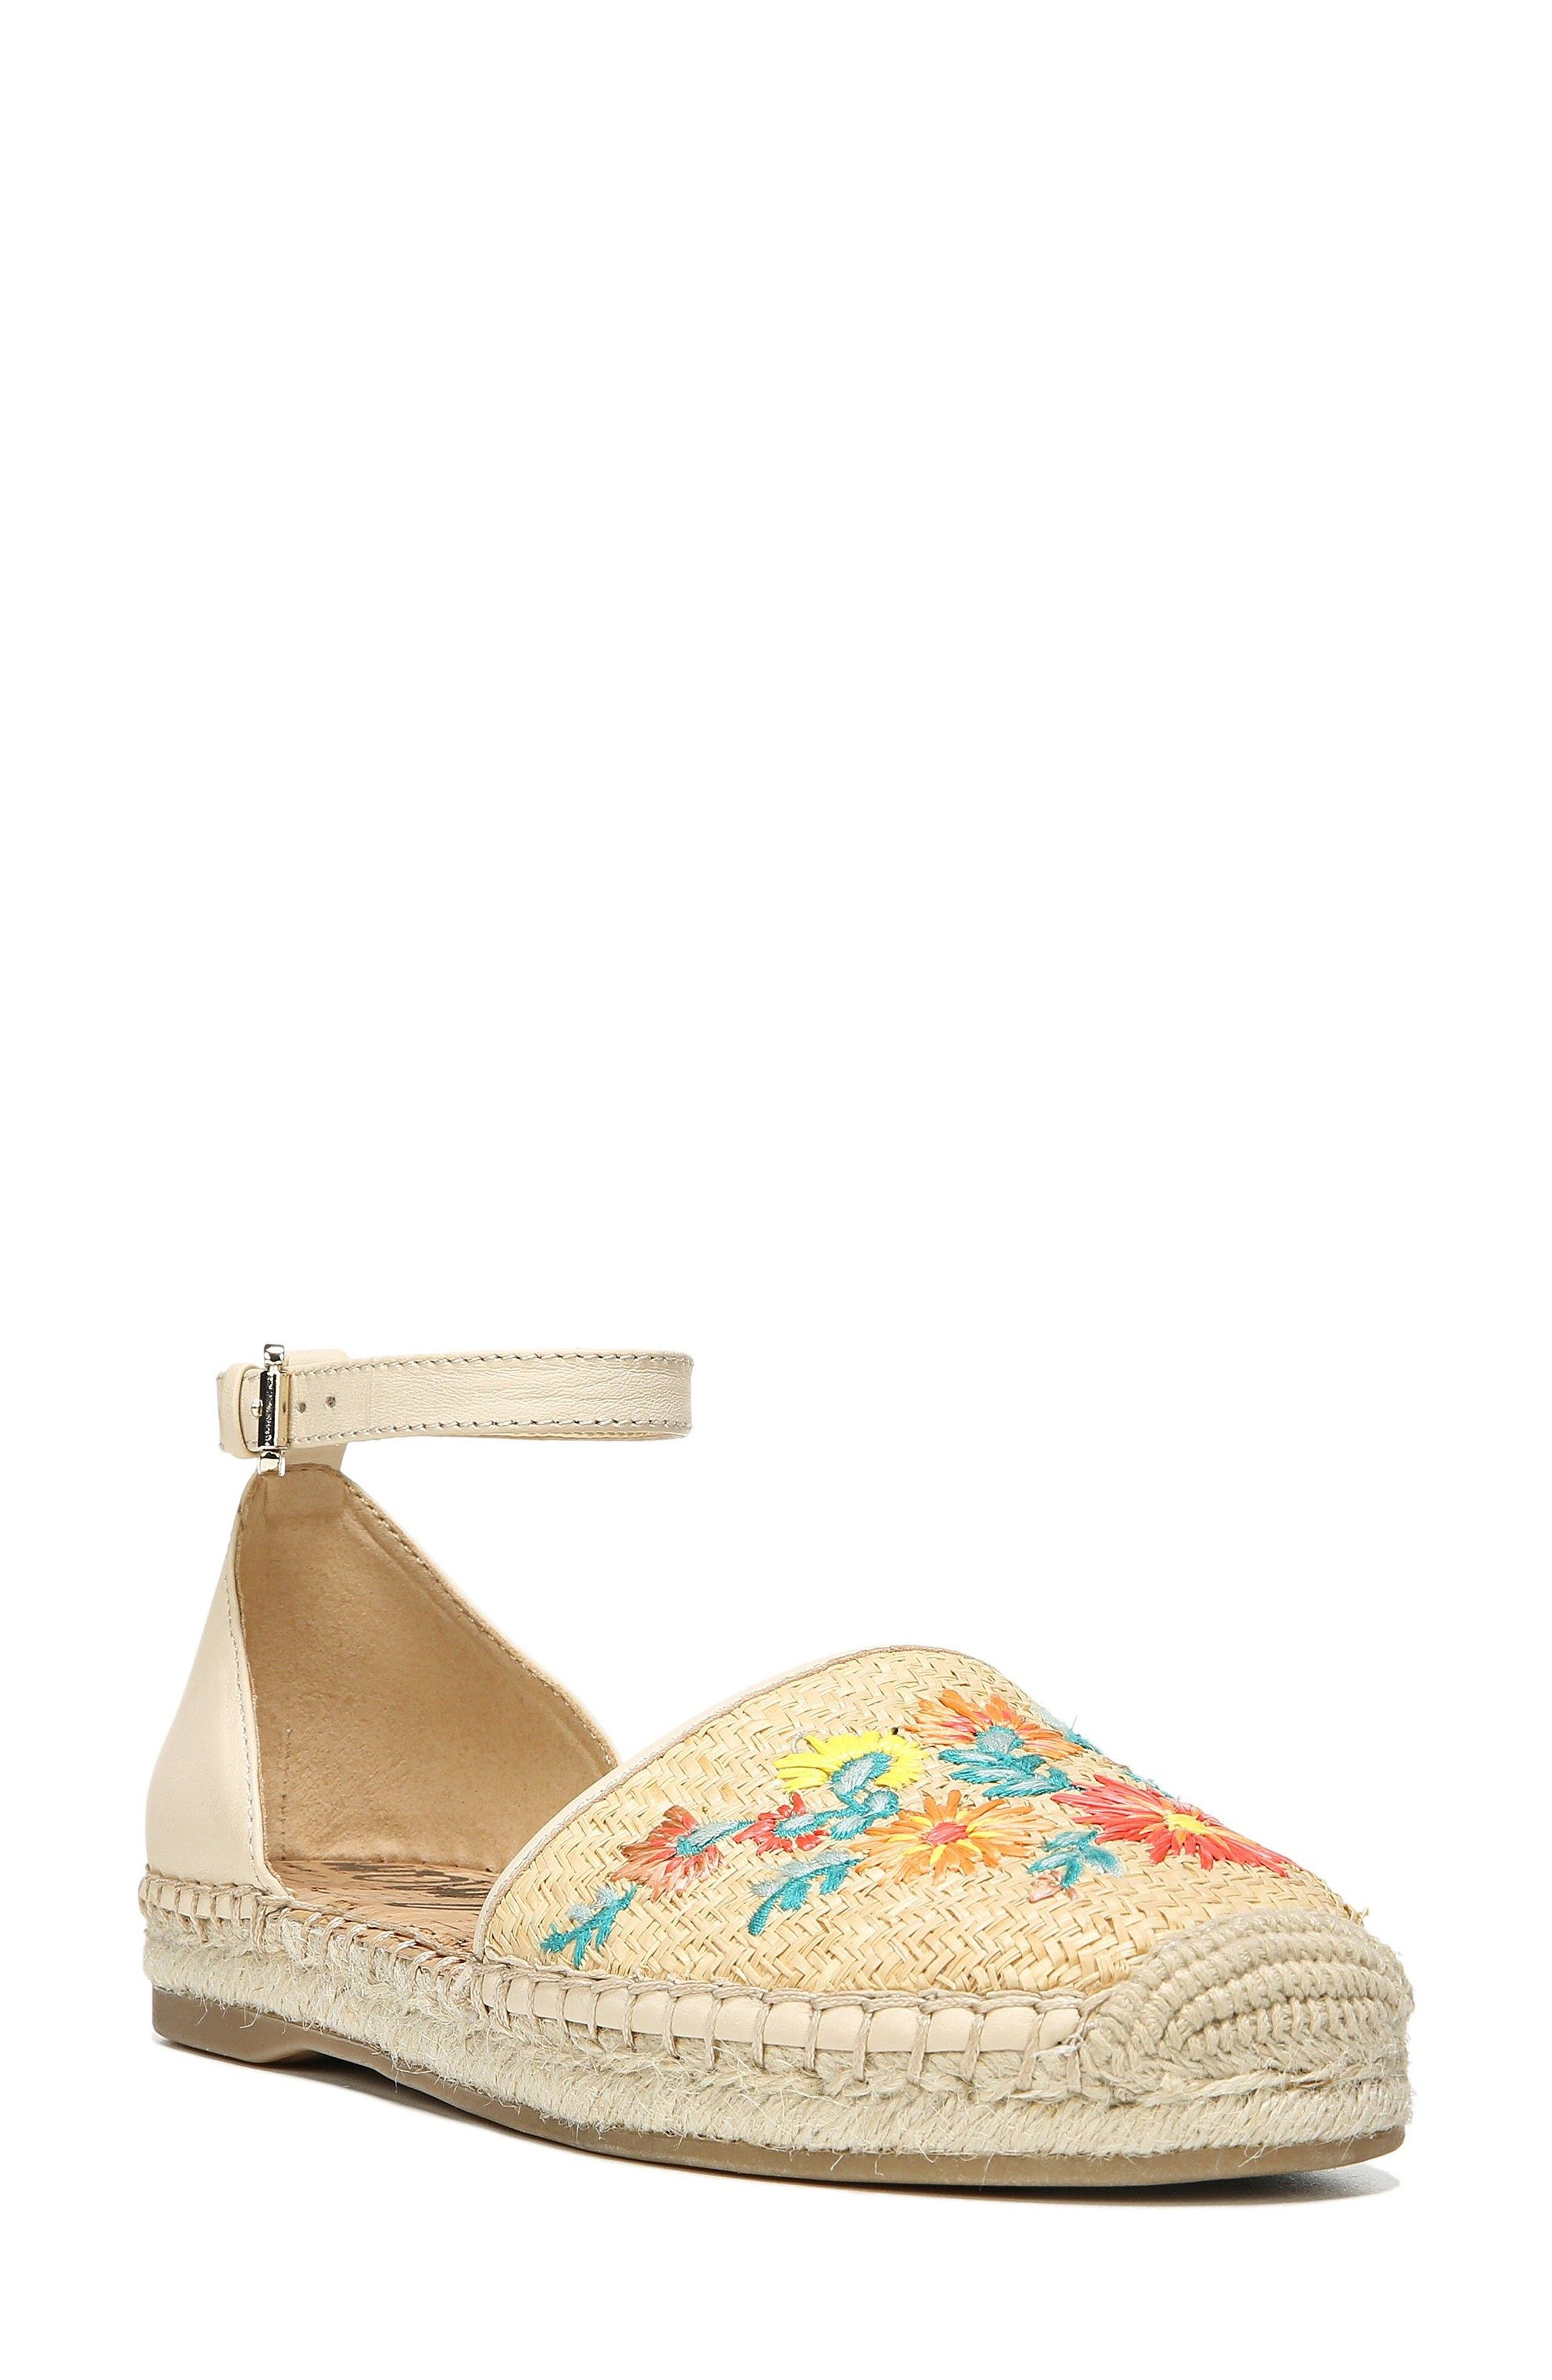 SAM EDELMAN Jemmie Peacock Embroidered Espadrille